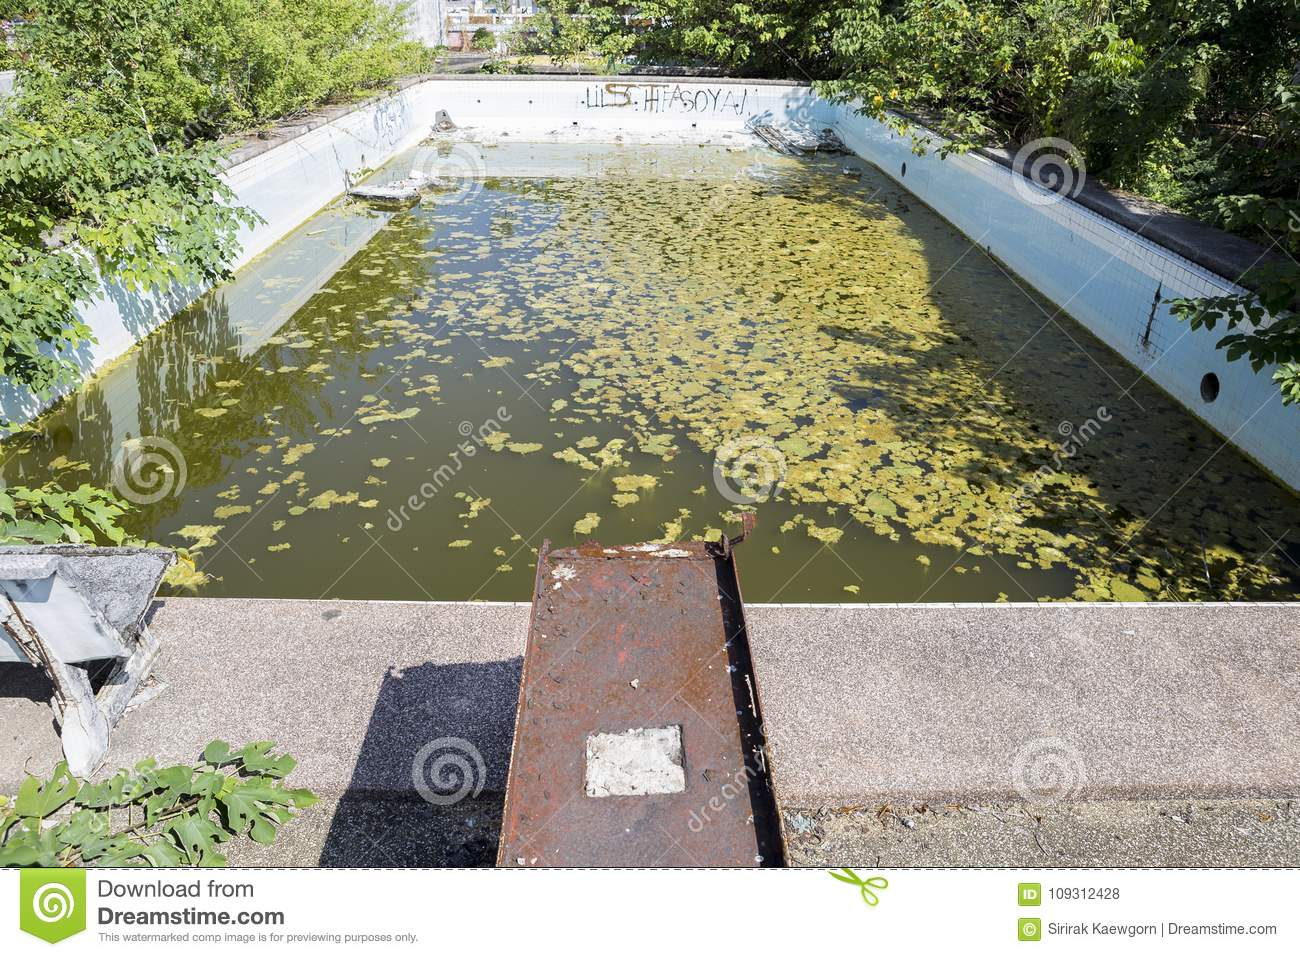 Abandoned Public Swimming Pool In Thailand Stock Photo Image Of Building Grunge 109312428